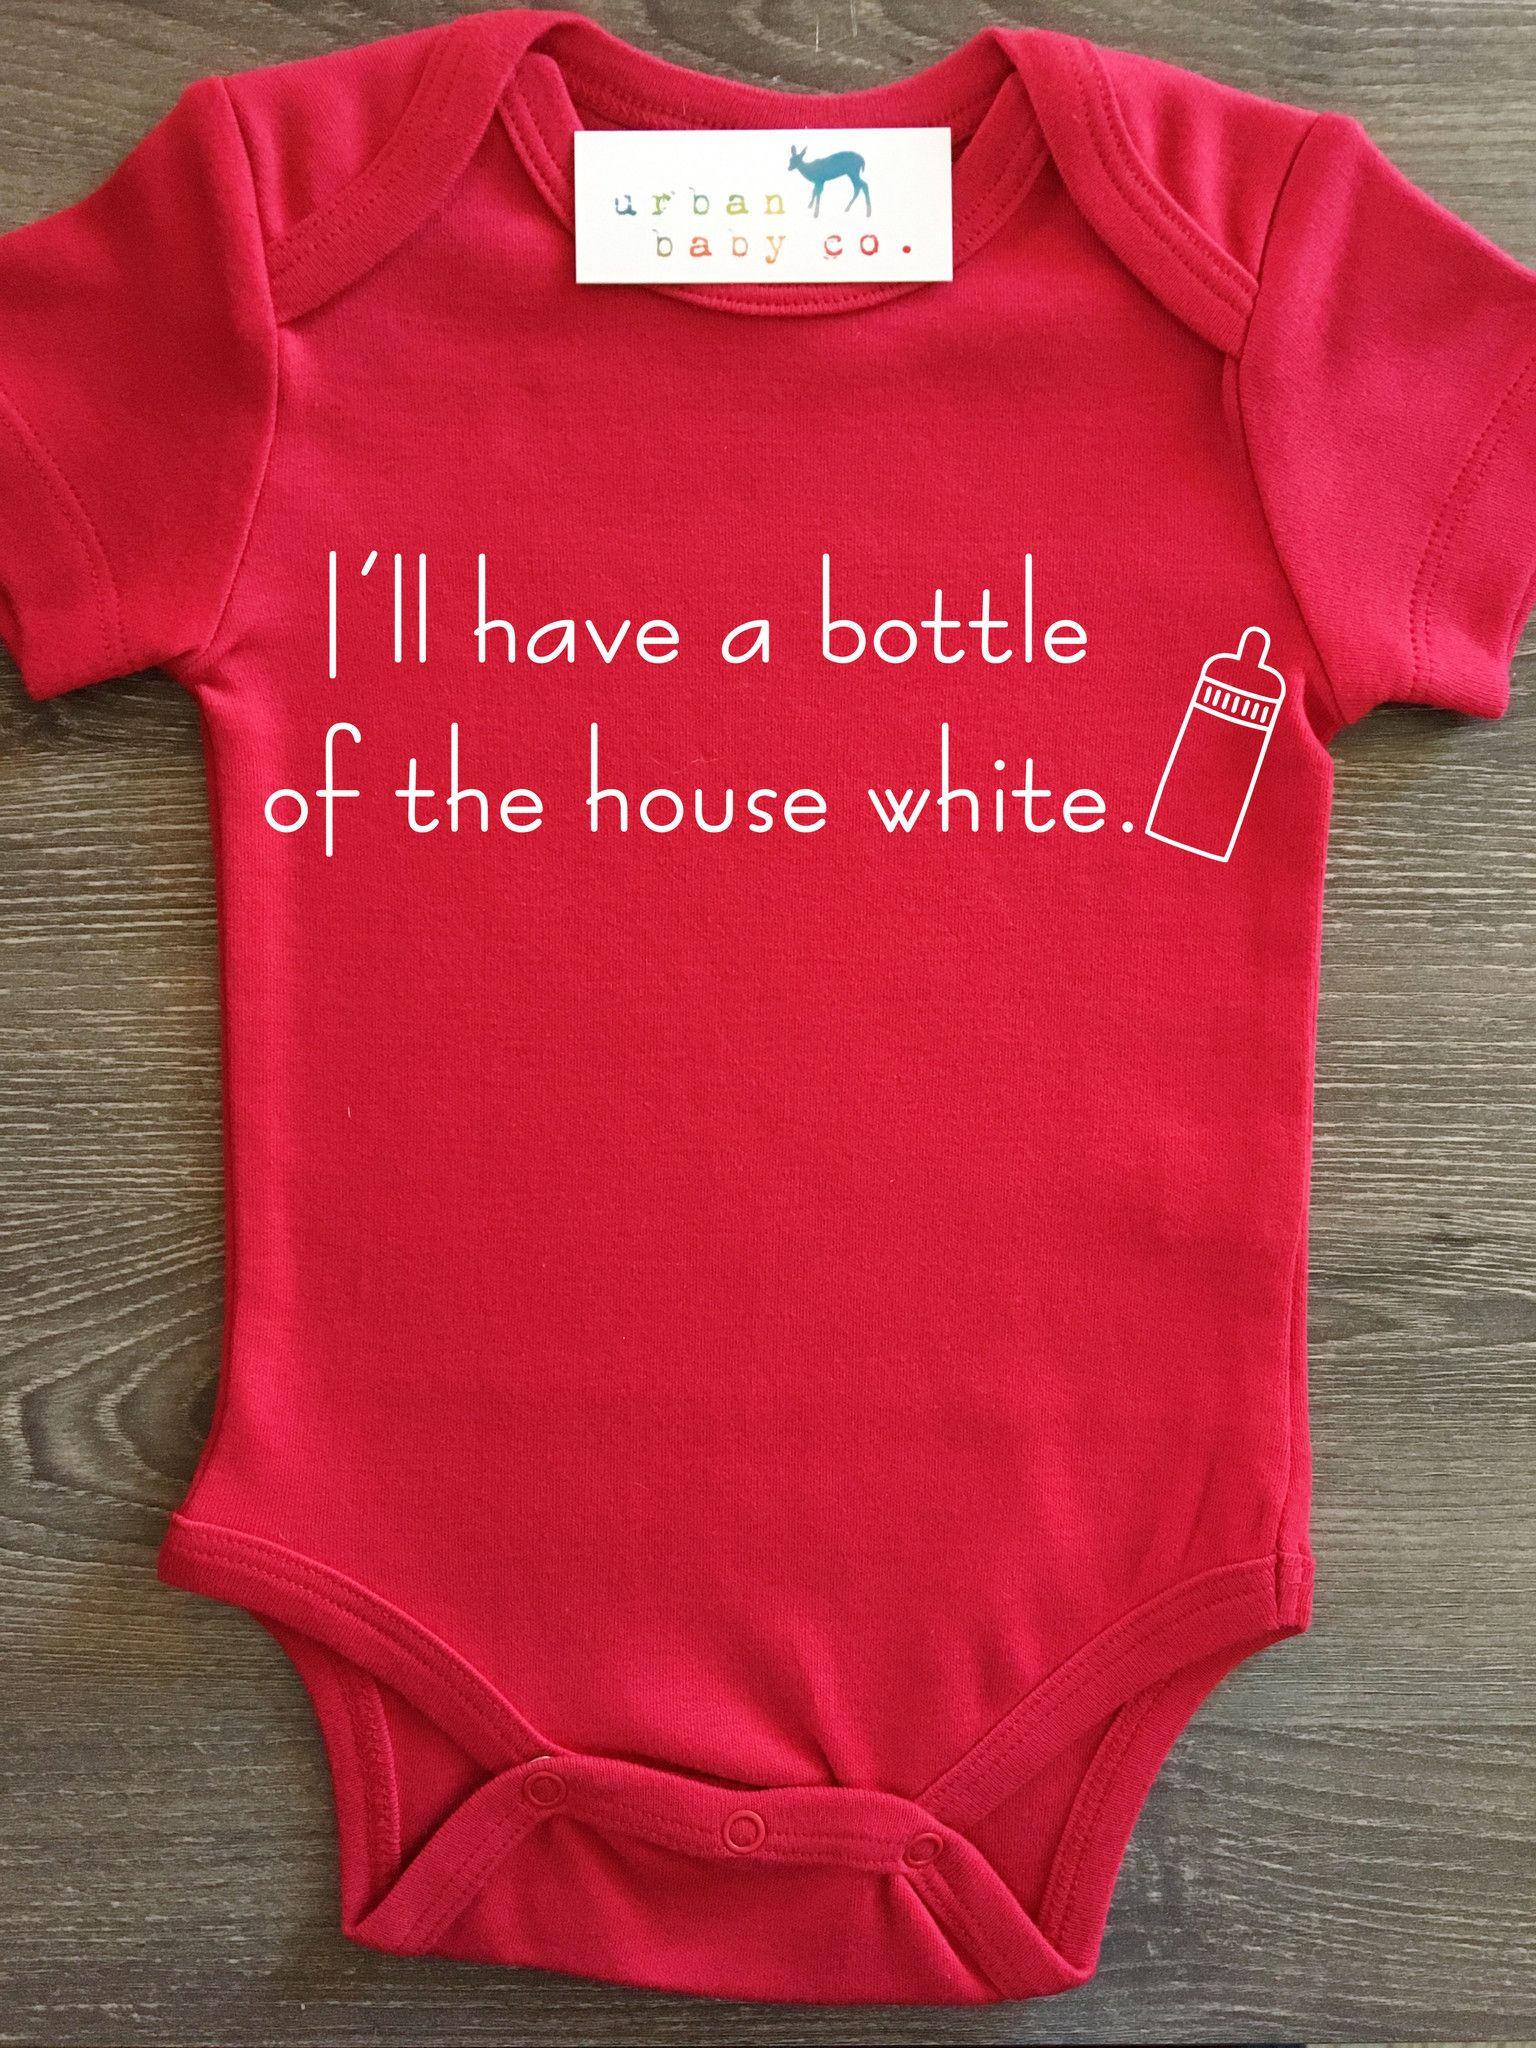 Bottle of House White Unisex Cotton Baby One Piece Funny Romper Gift Boy Girl